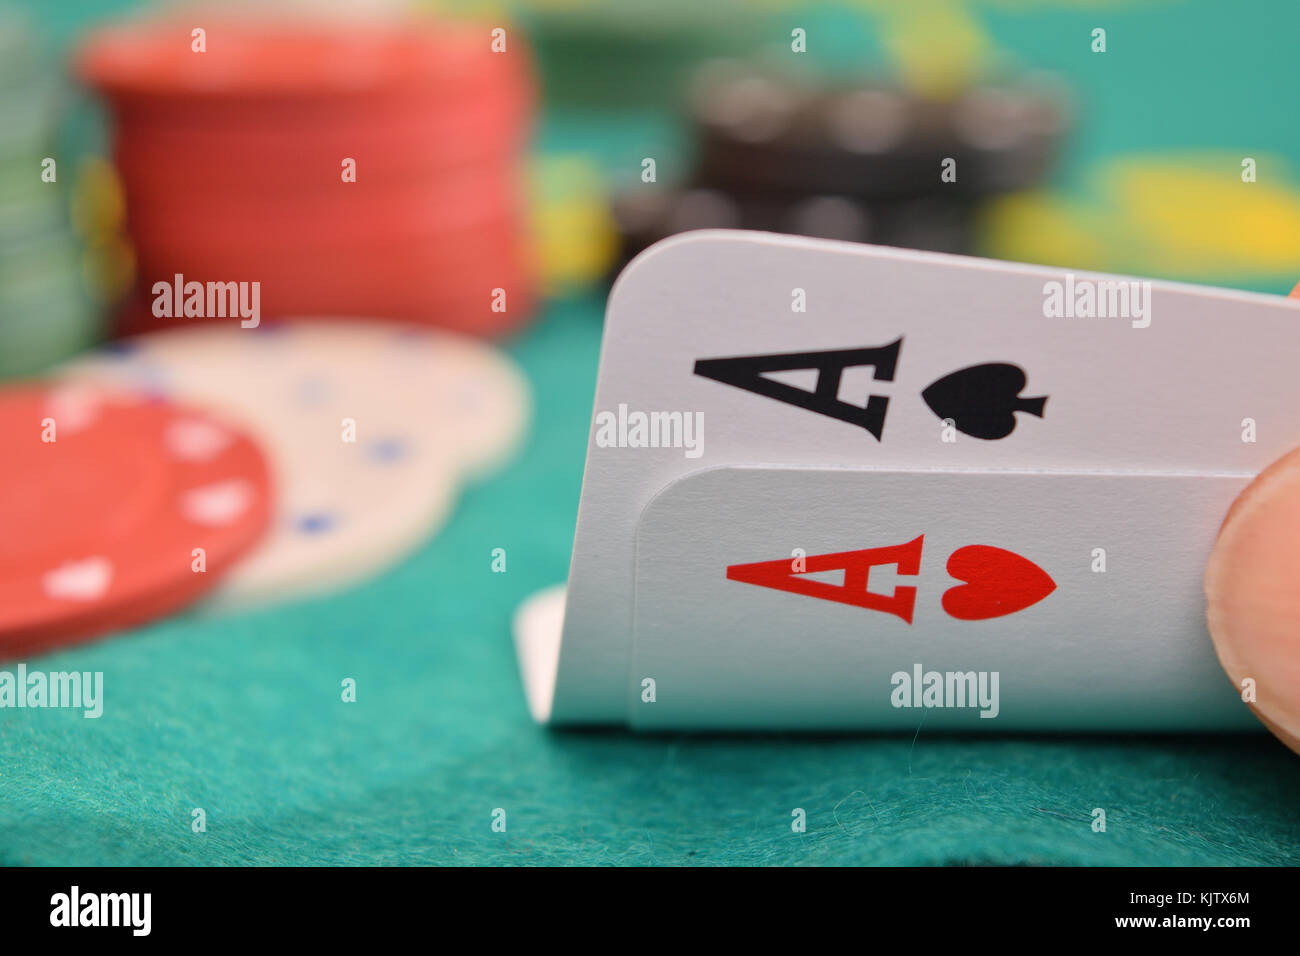 aces pair on a gambling table with chips - Stock Image